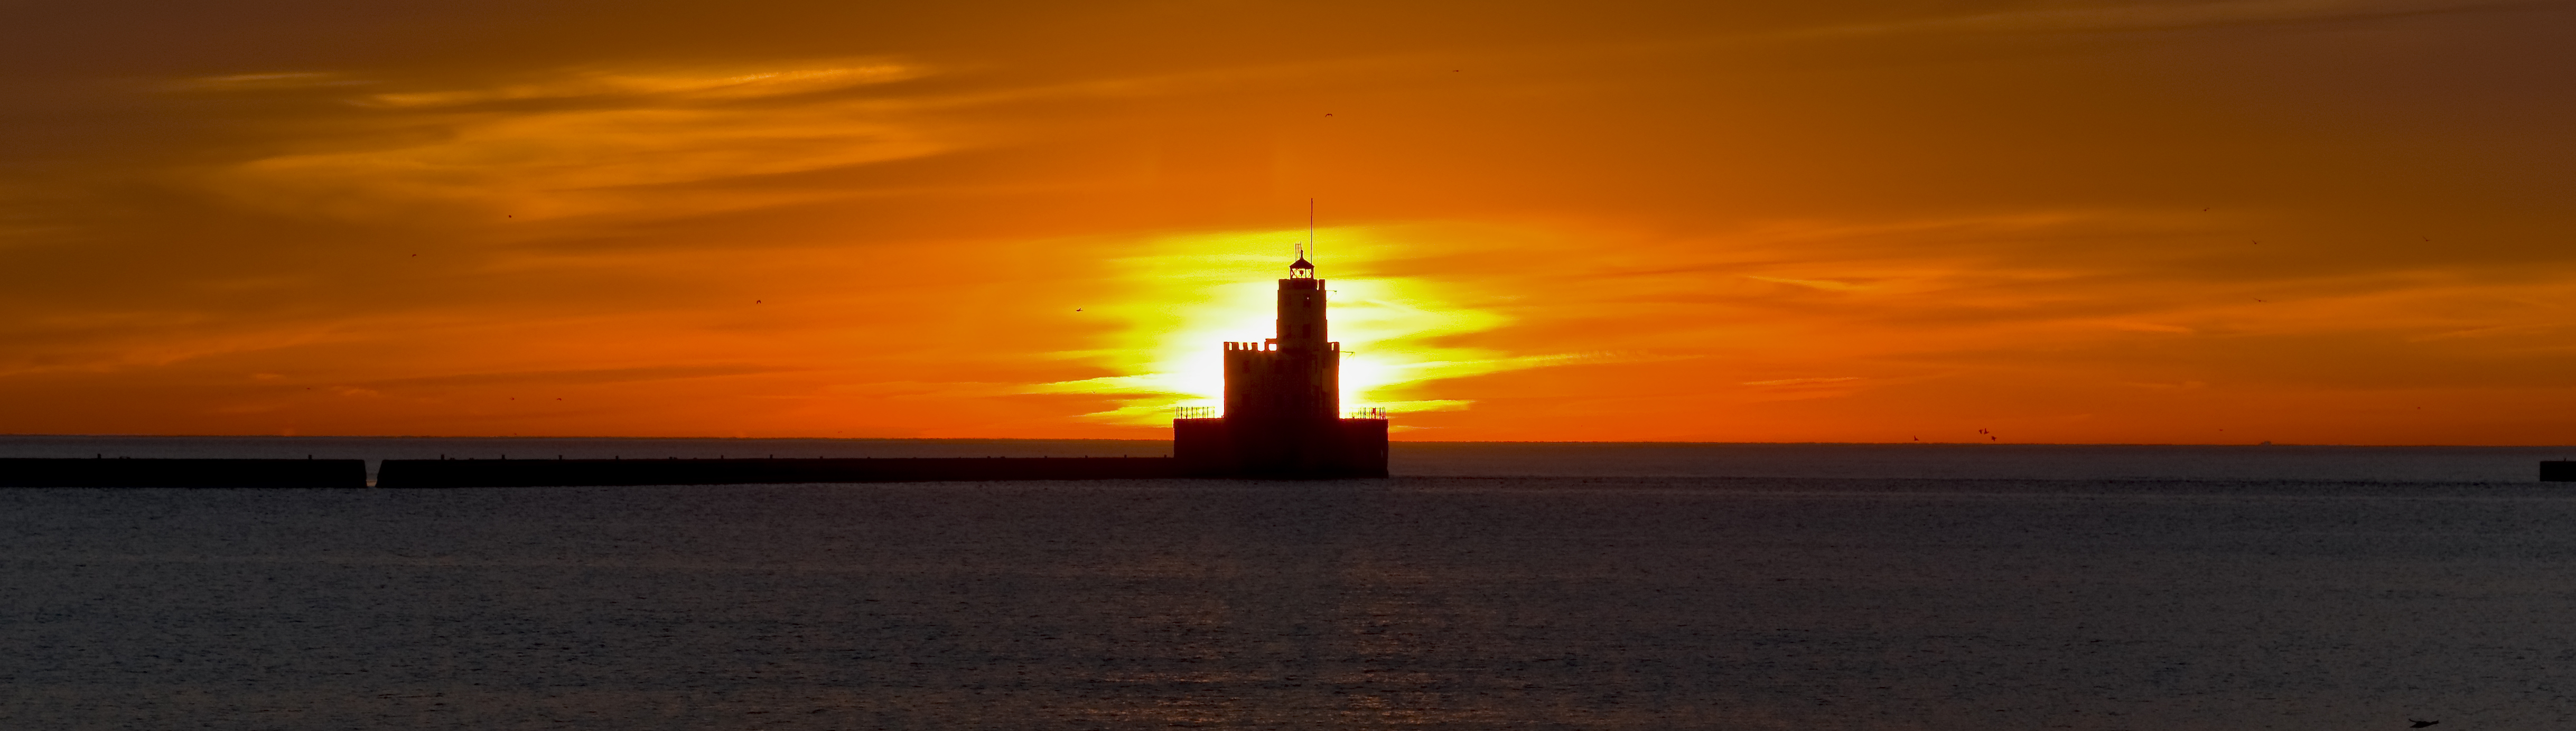 Sunrise_Lake Michigan